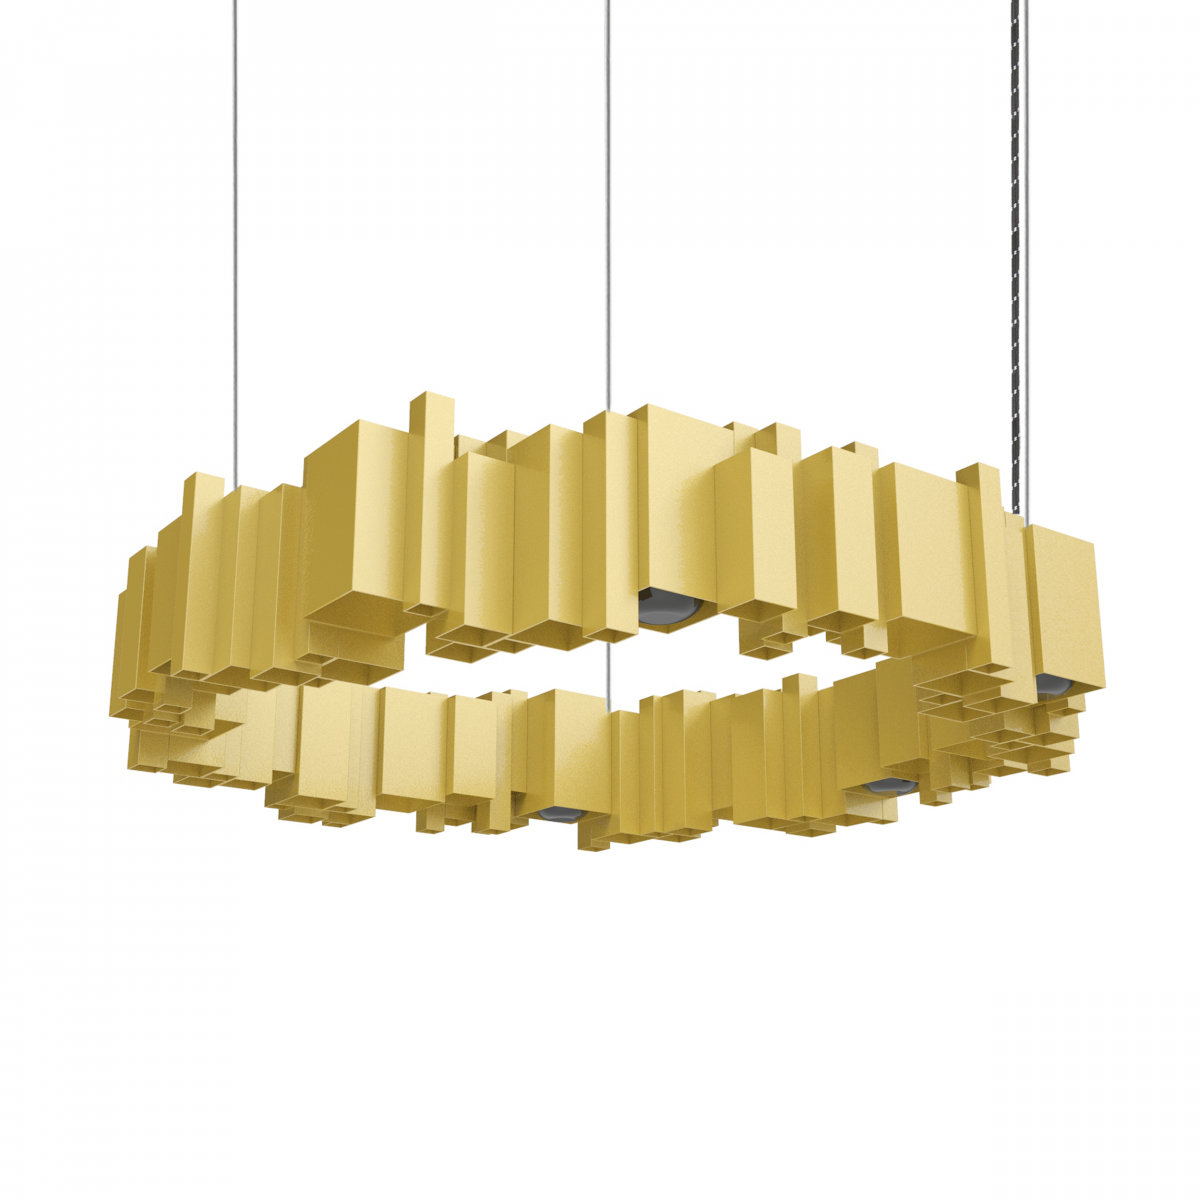 JSPR Cityscapes Urban Dutch Design Lamp OFF Gold Goud